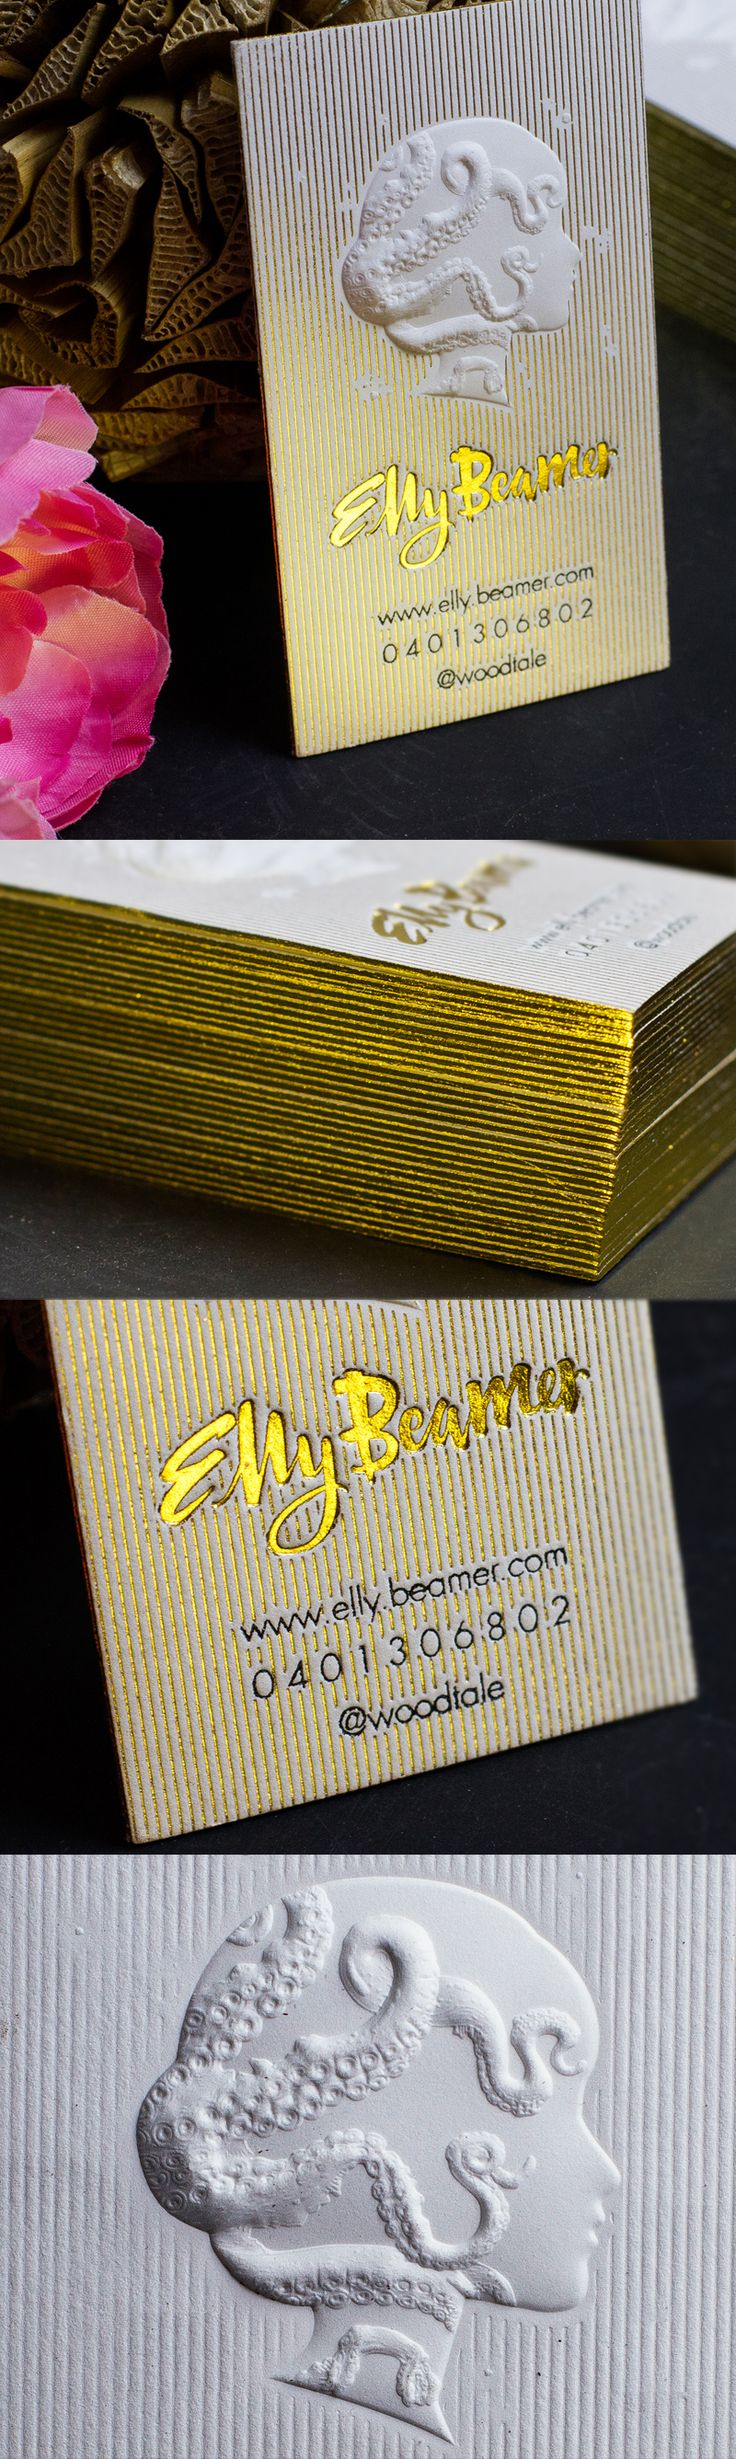 309 best business cards images on pinterest business card design stunning 3d embossed business card with gold foil and letterpress details design by the talented reheart Image collections